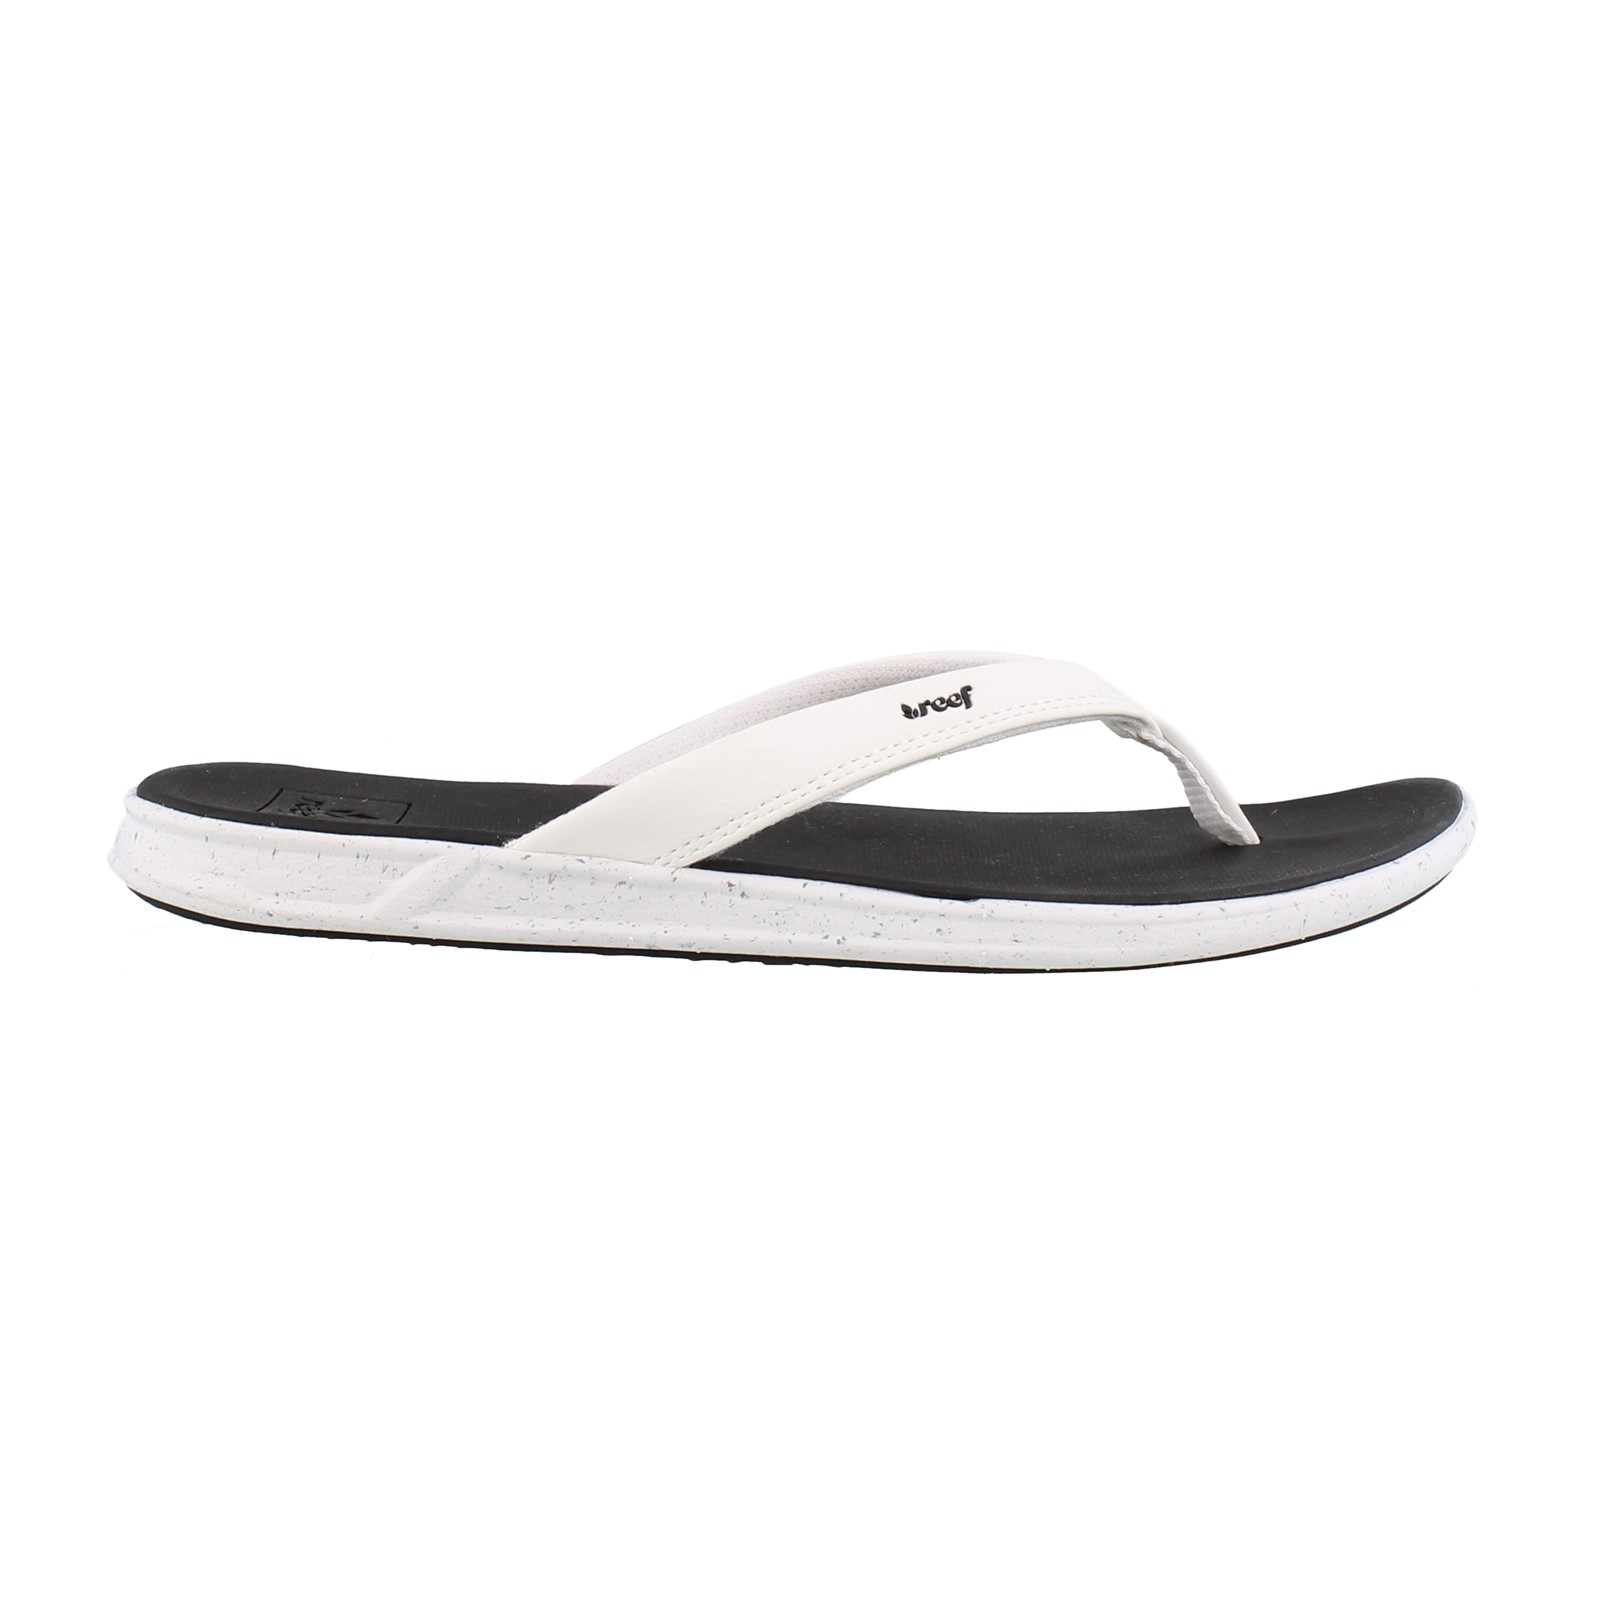 Women'S Reef Rover Catch Pop Thong Sandals reef thong sandals Shoes